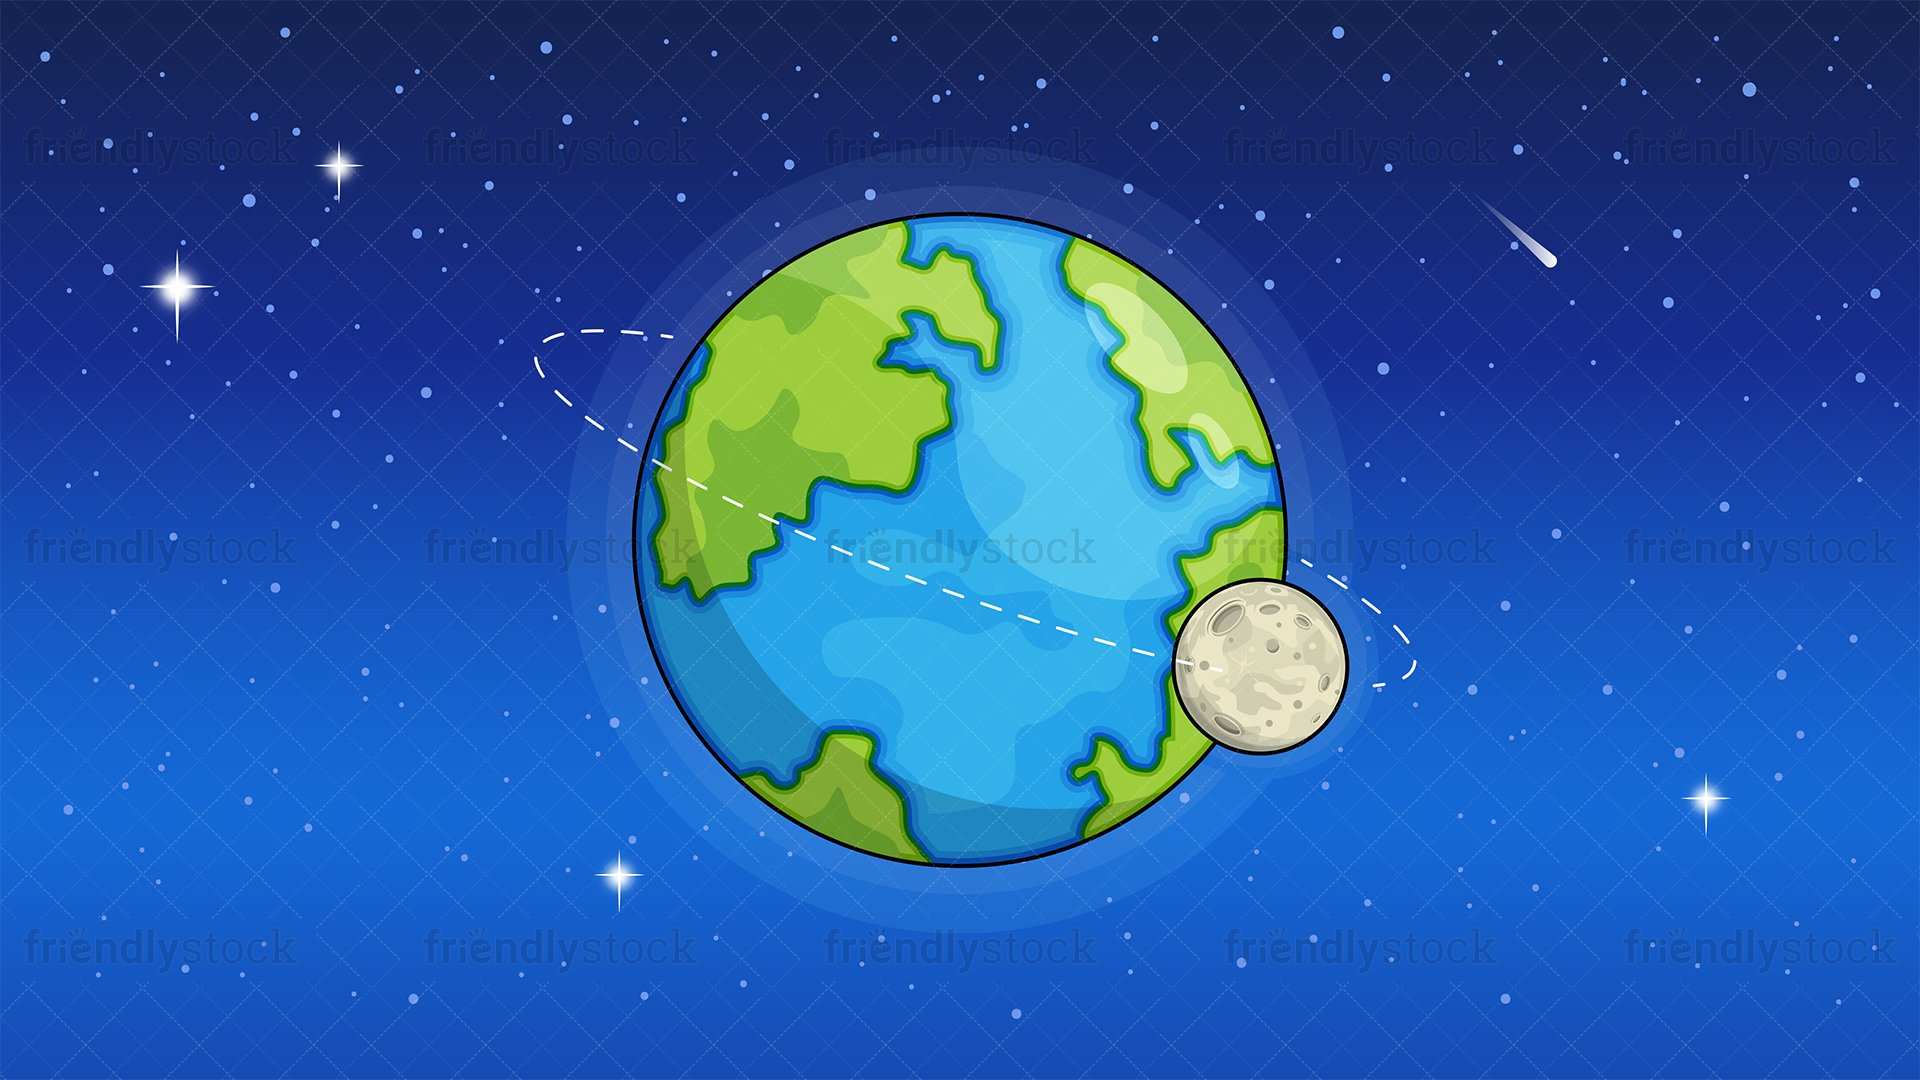 Earth From Space Background Cartoon Clipart Vector   FriendlyStock 1920x1080